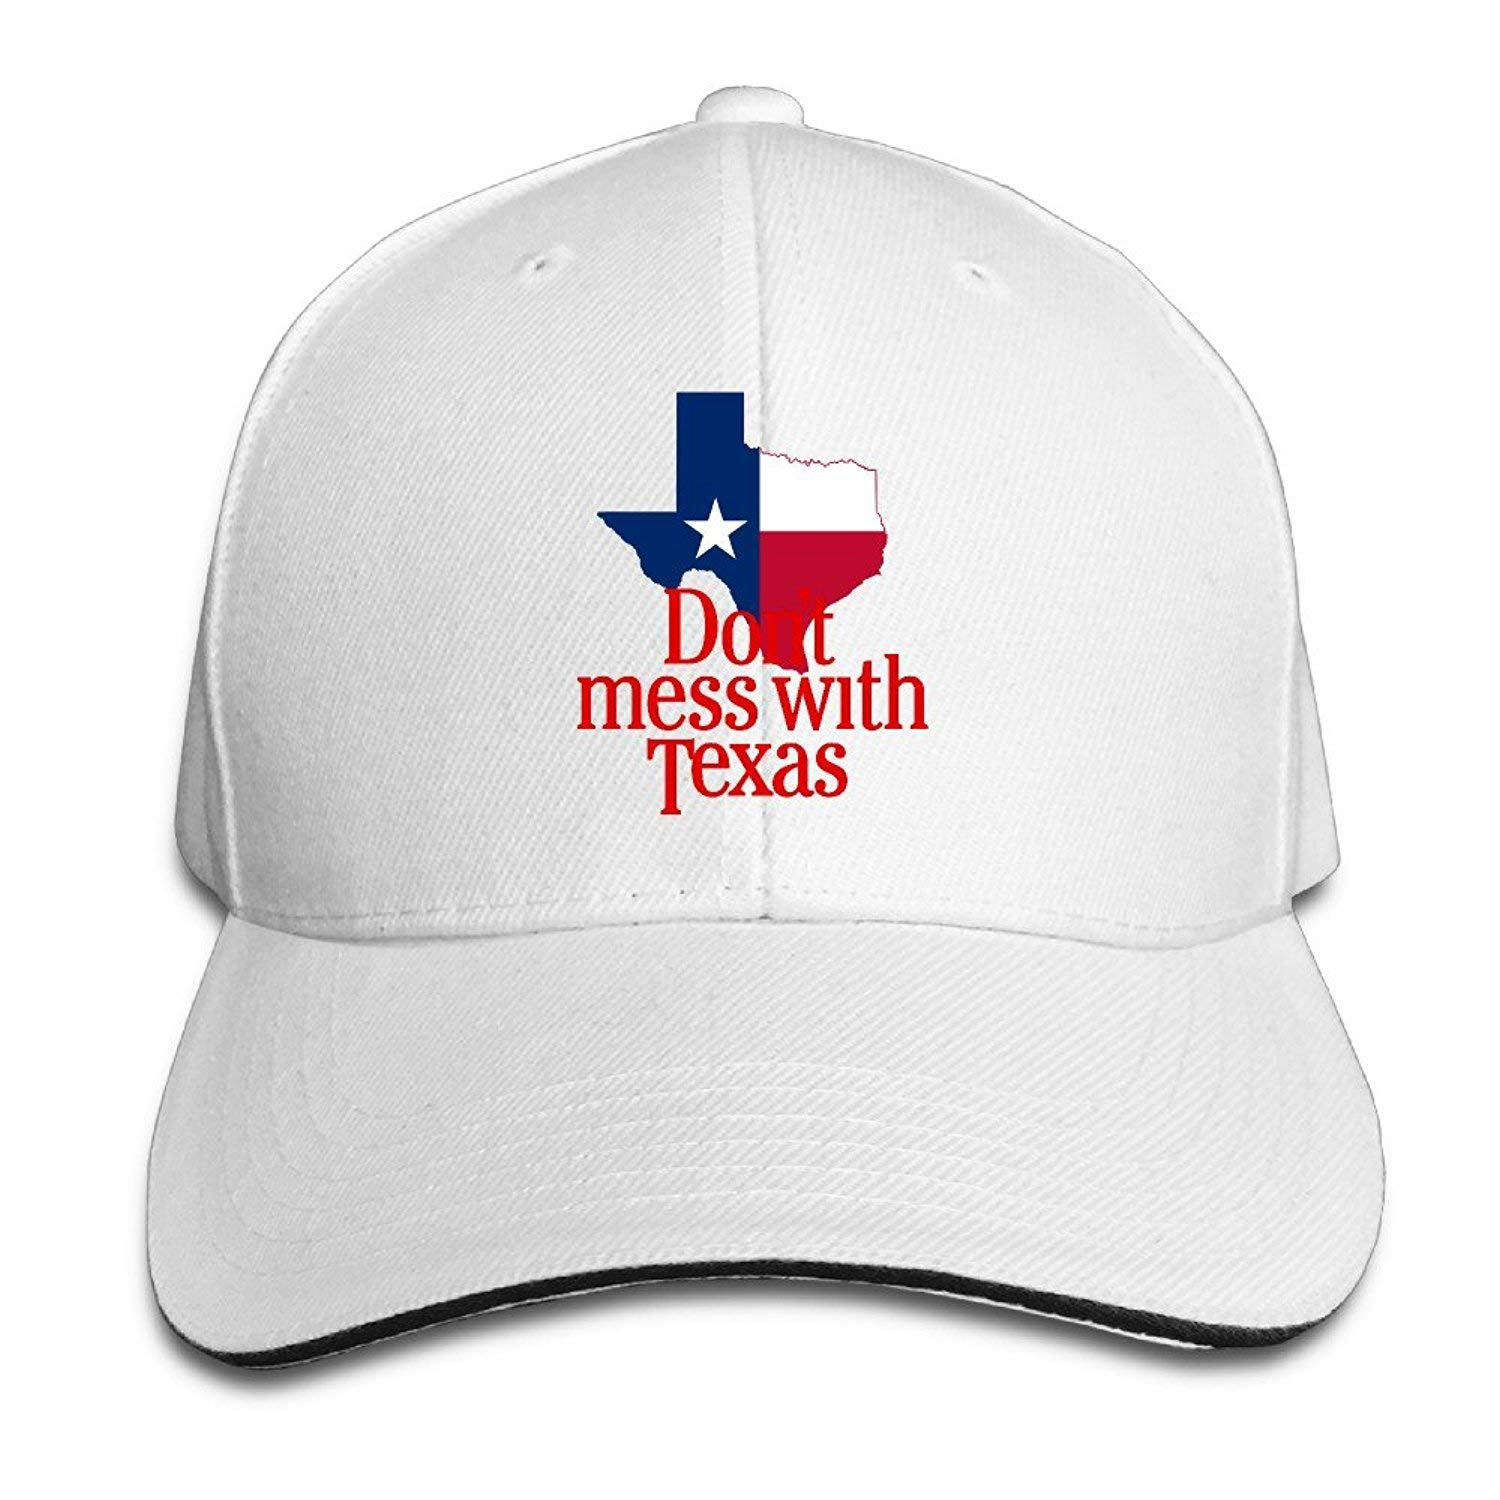 Baseball Caps Dont Mess with Texas Ash One Size: Amazon.es: Ropa ...